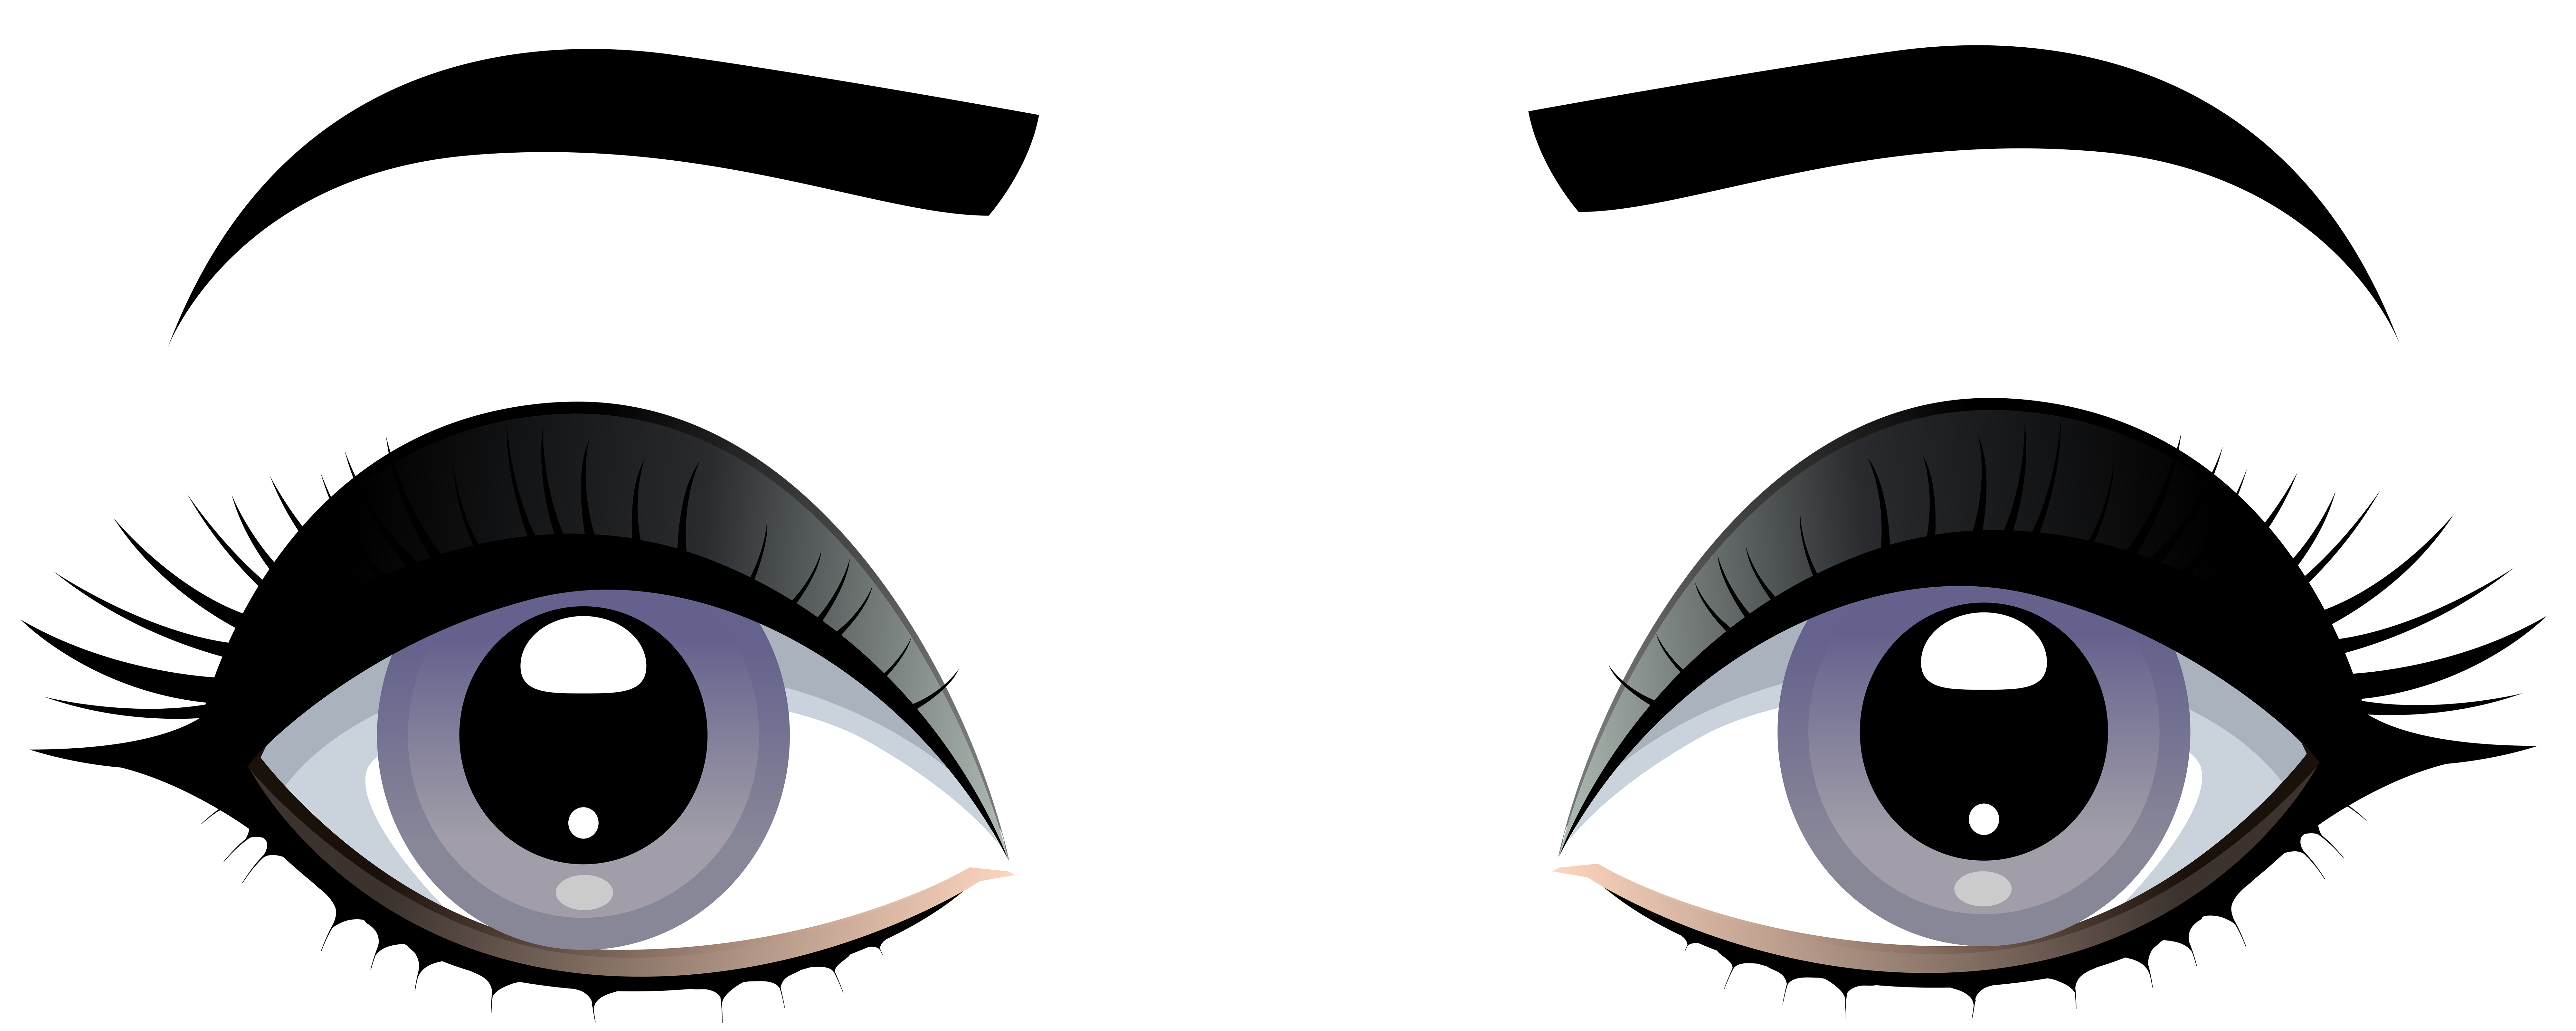 Eyes clipart. Female grey with eyebrows